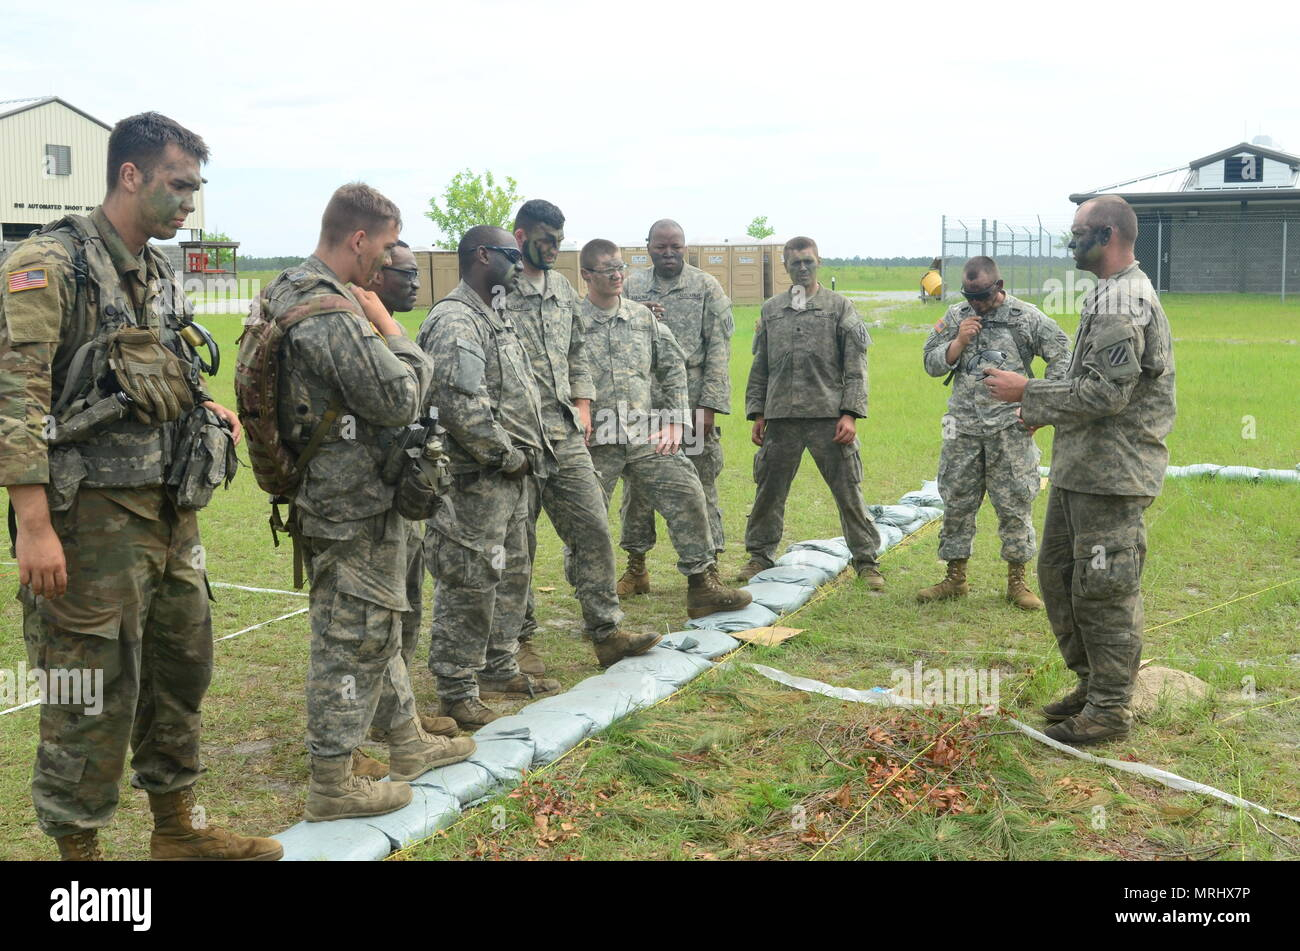 Soldiers from 2nd Battalion, 121st Infantry Regiment, 48th